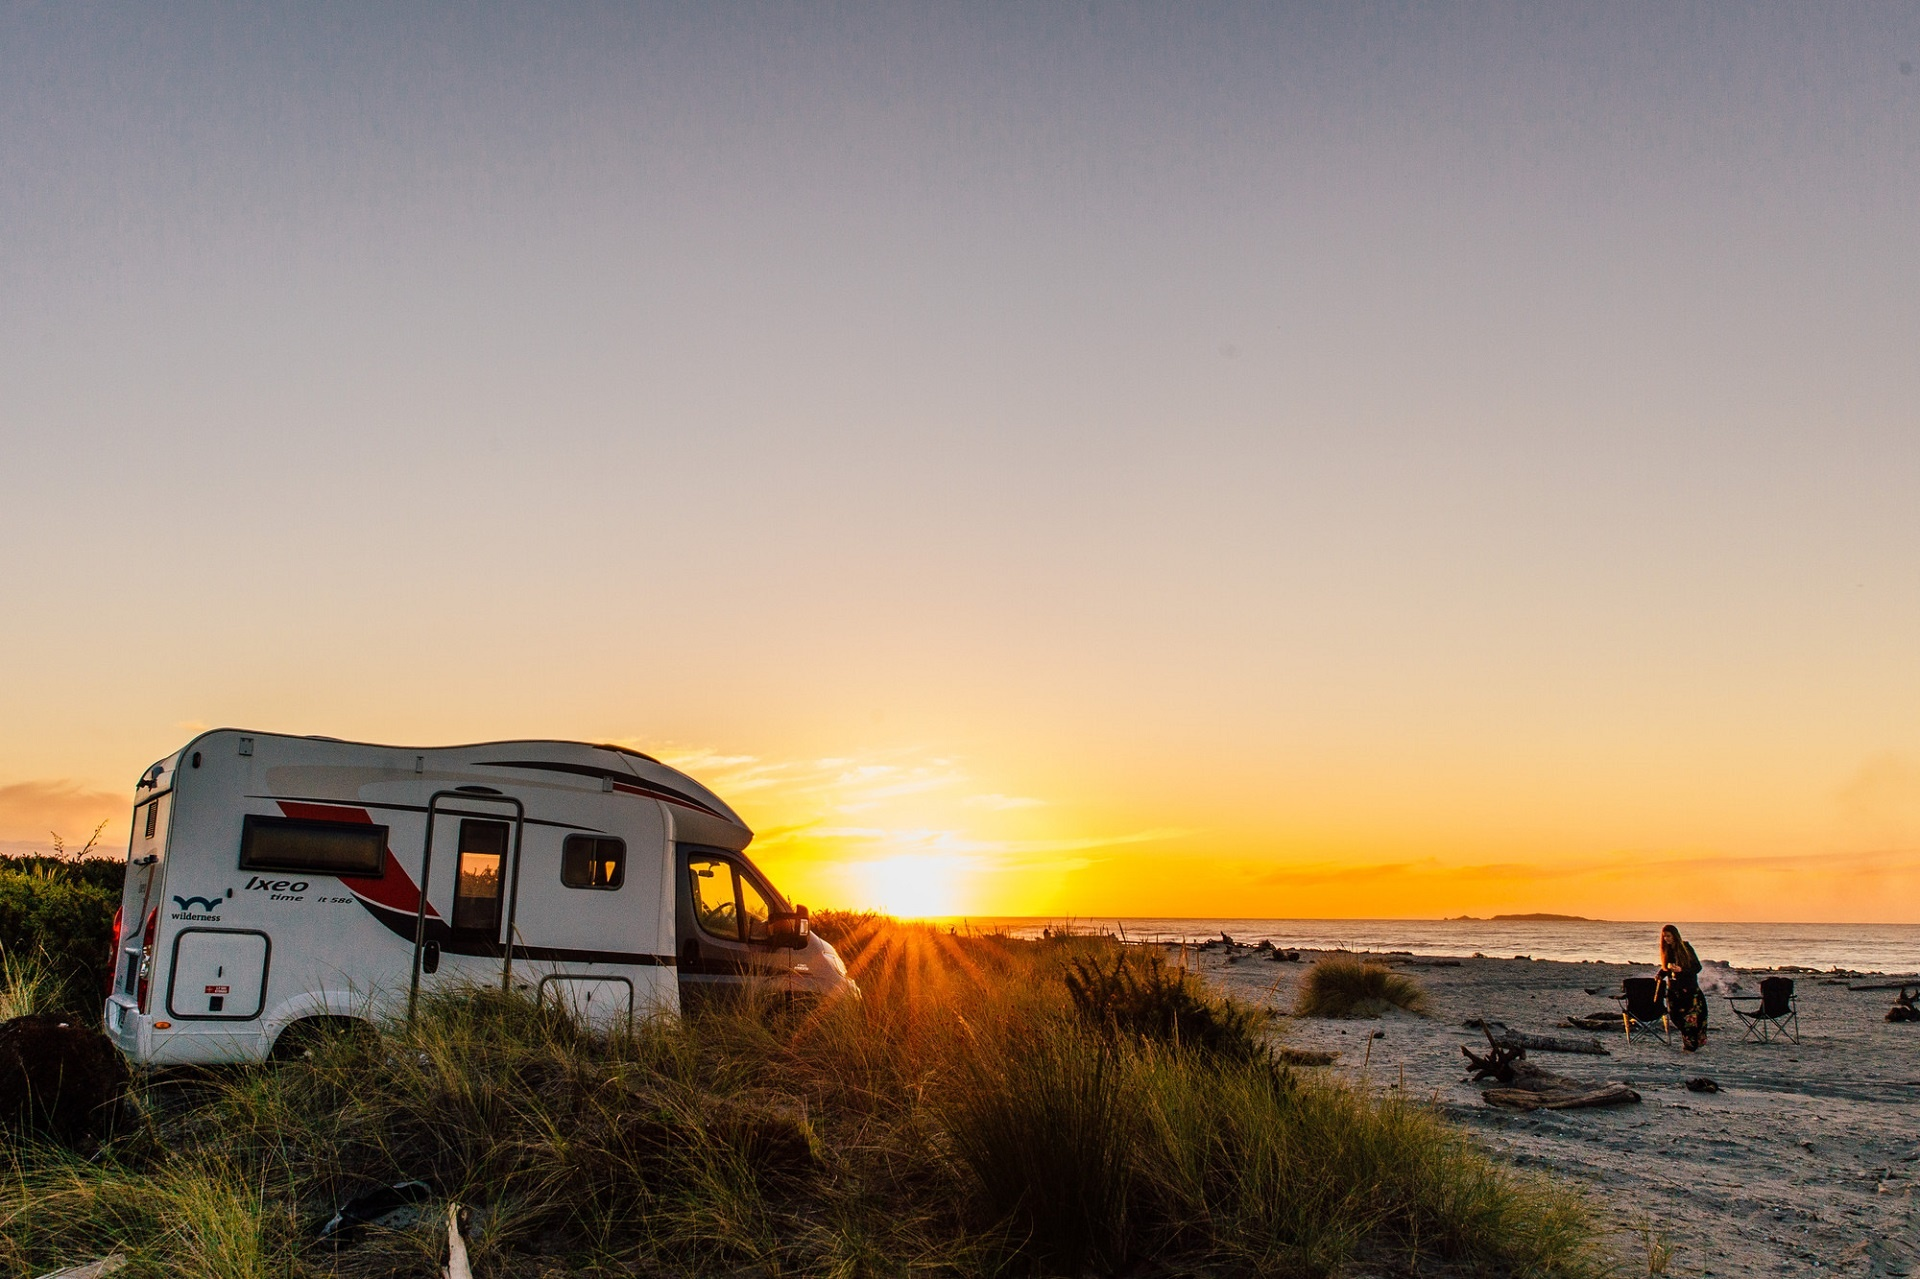 Our 9 Day Motorhome Adventure Around New Zealand's South Island